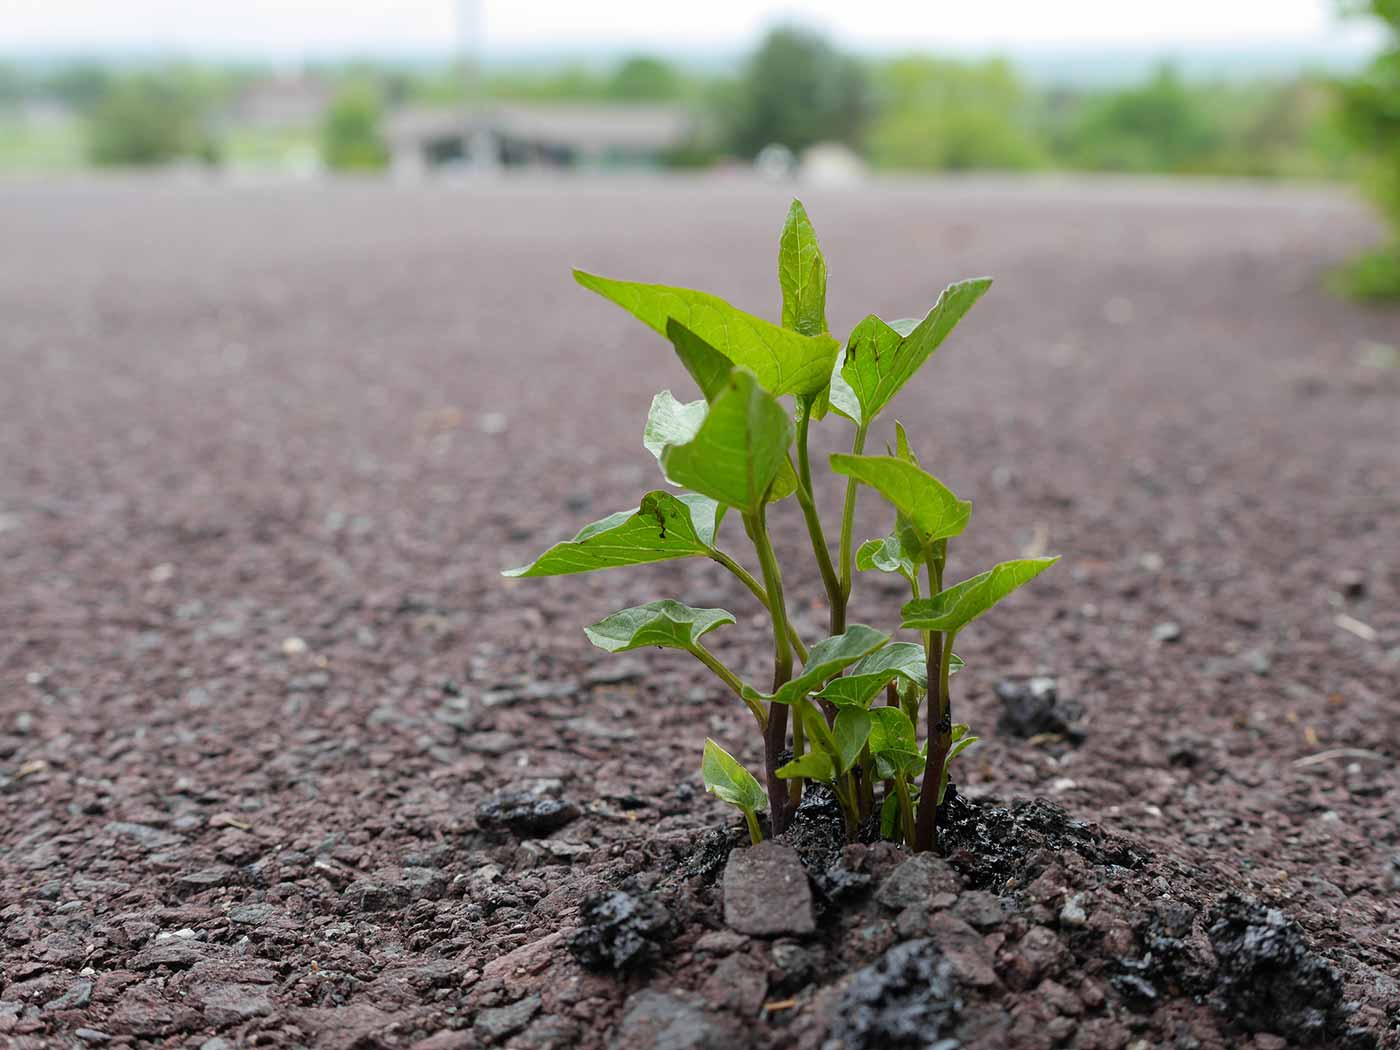 Bindweed plant breaking through asphalt